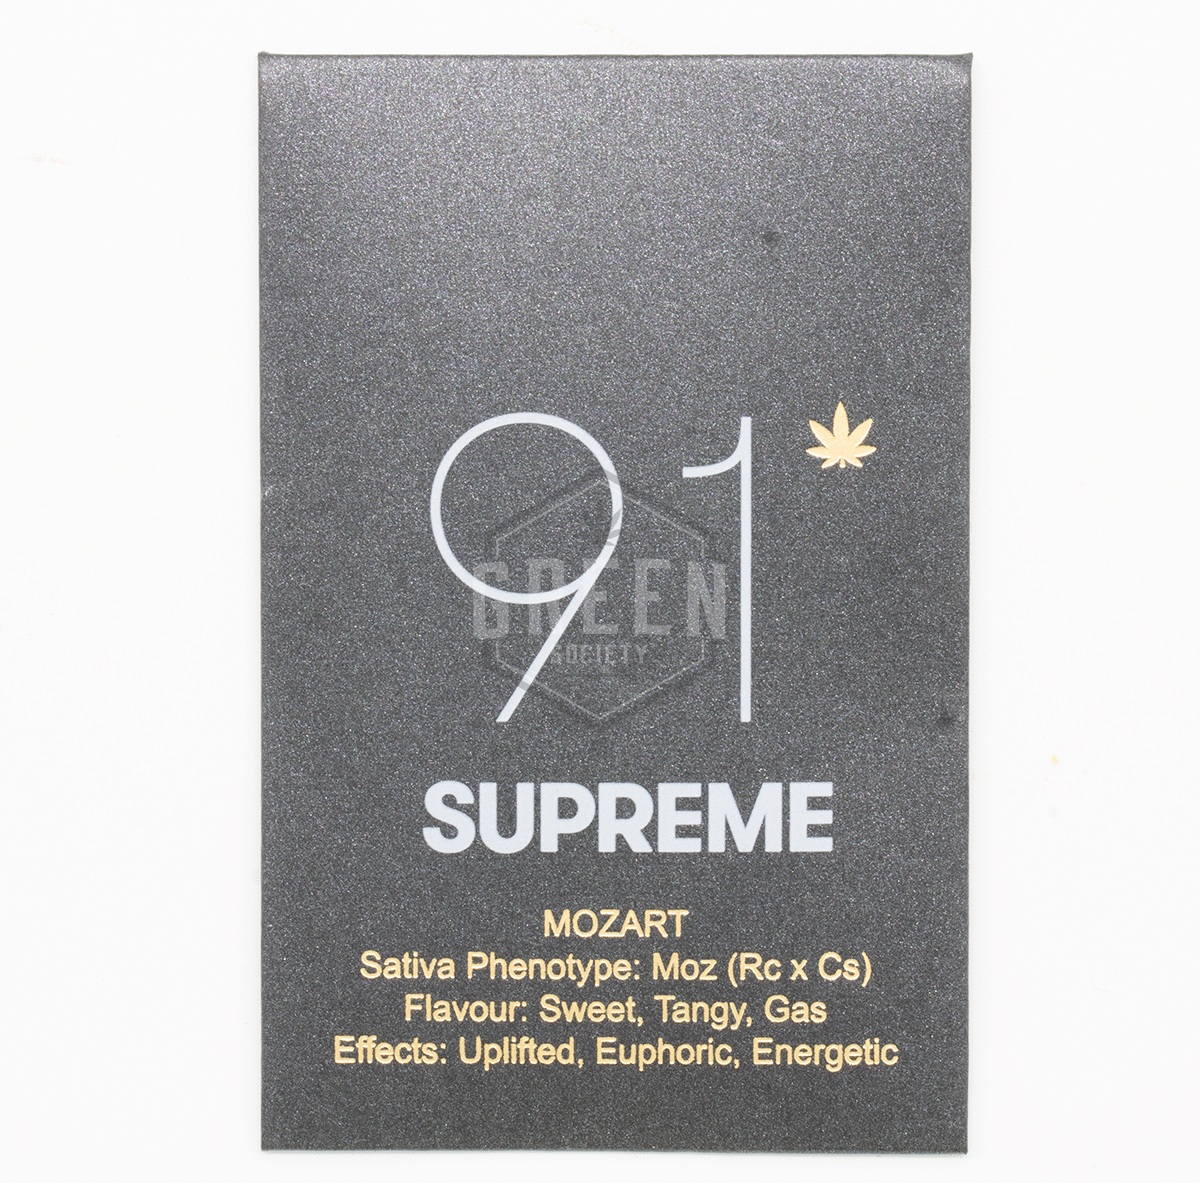 Mozart Shatter by 91 Supreme by Green Society - Image © 2018 Green Society. All Rights Reserved.